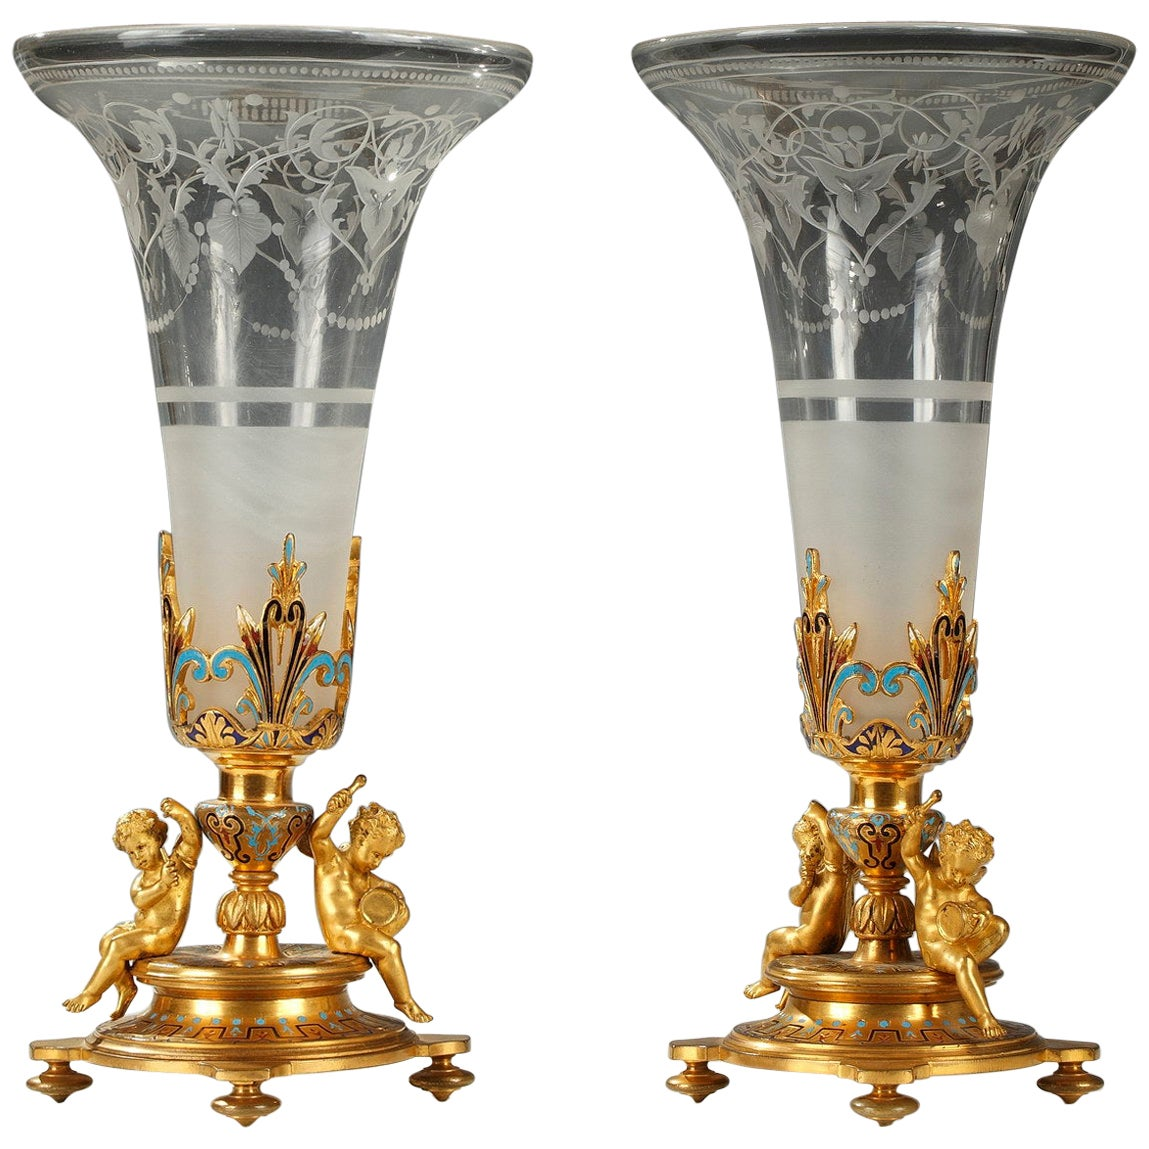 Pair of Trumpet Vases A. Giroux